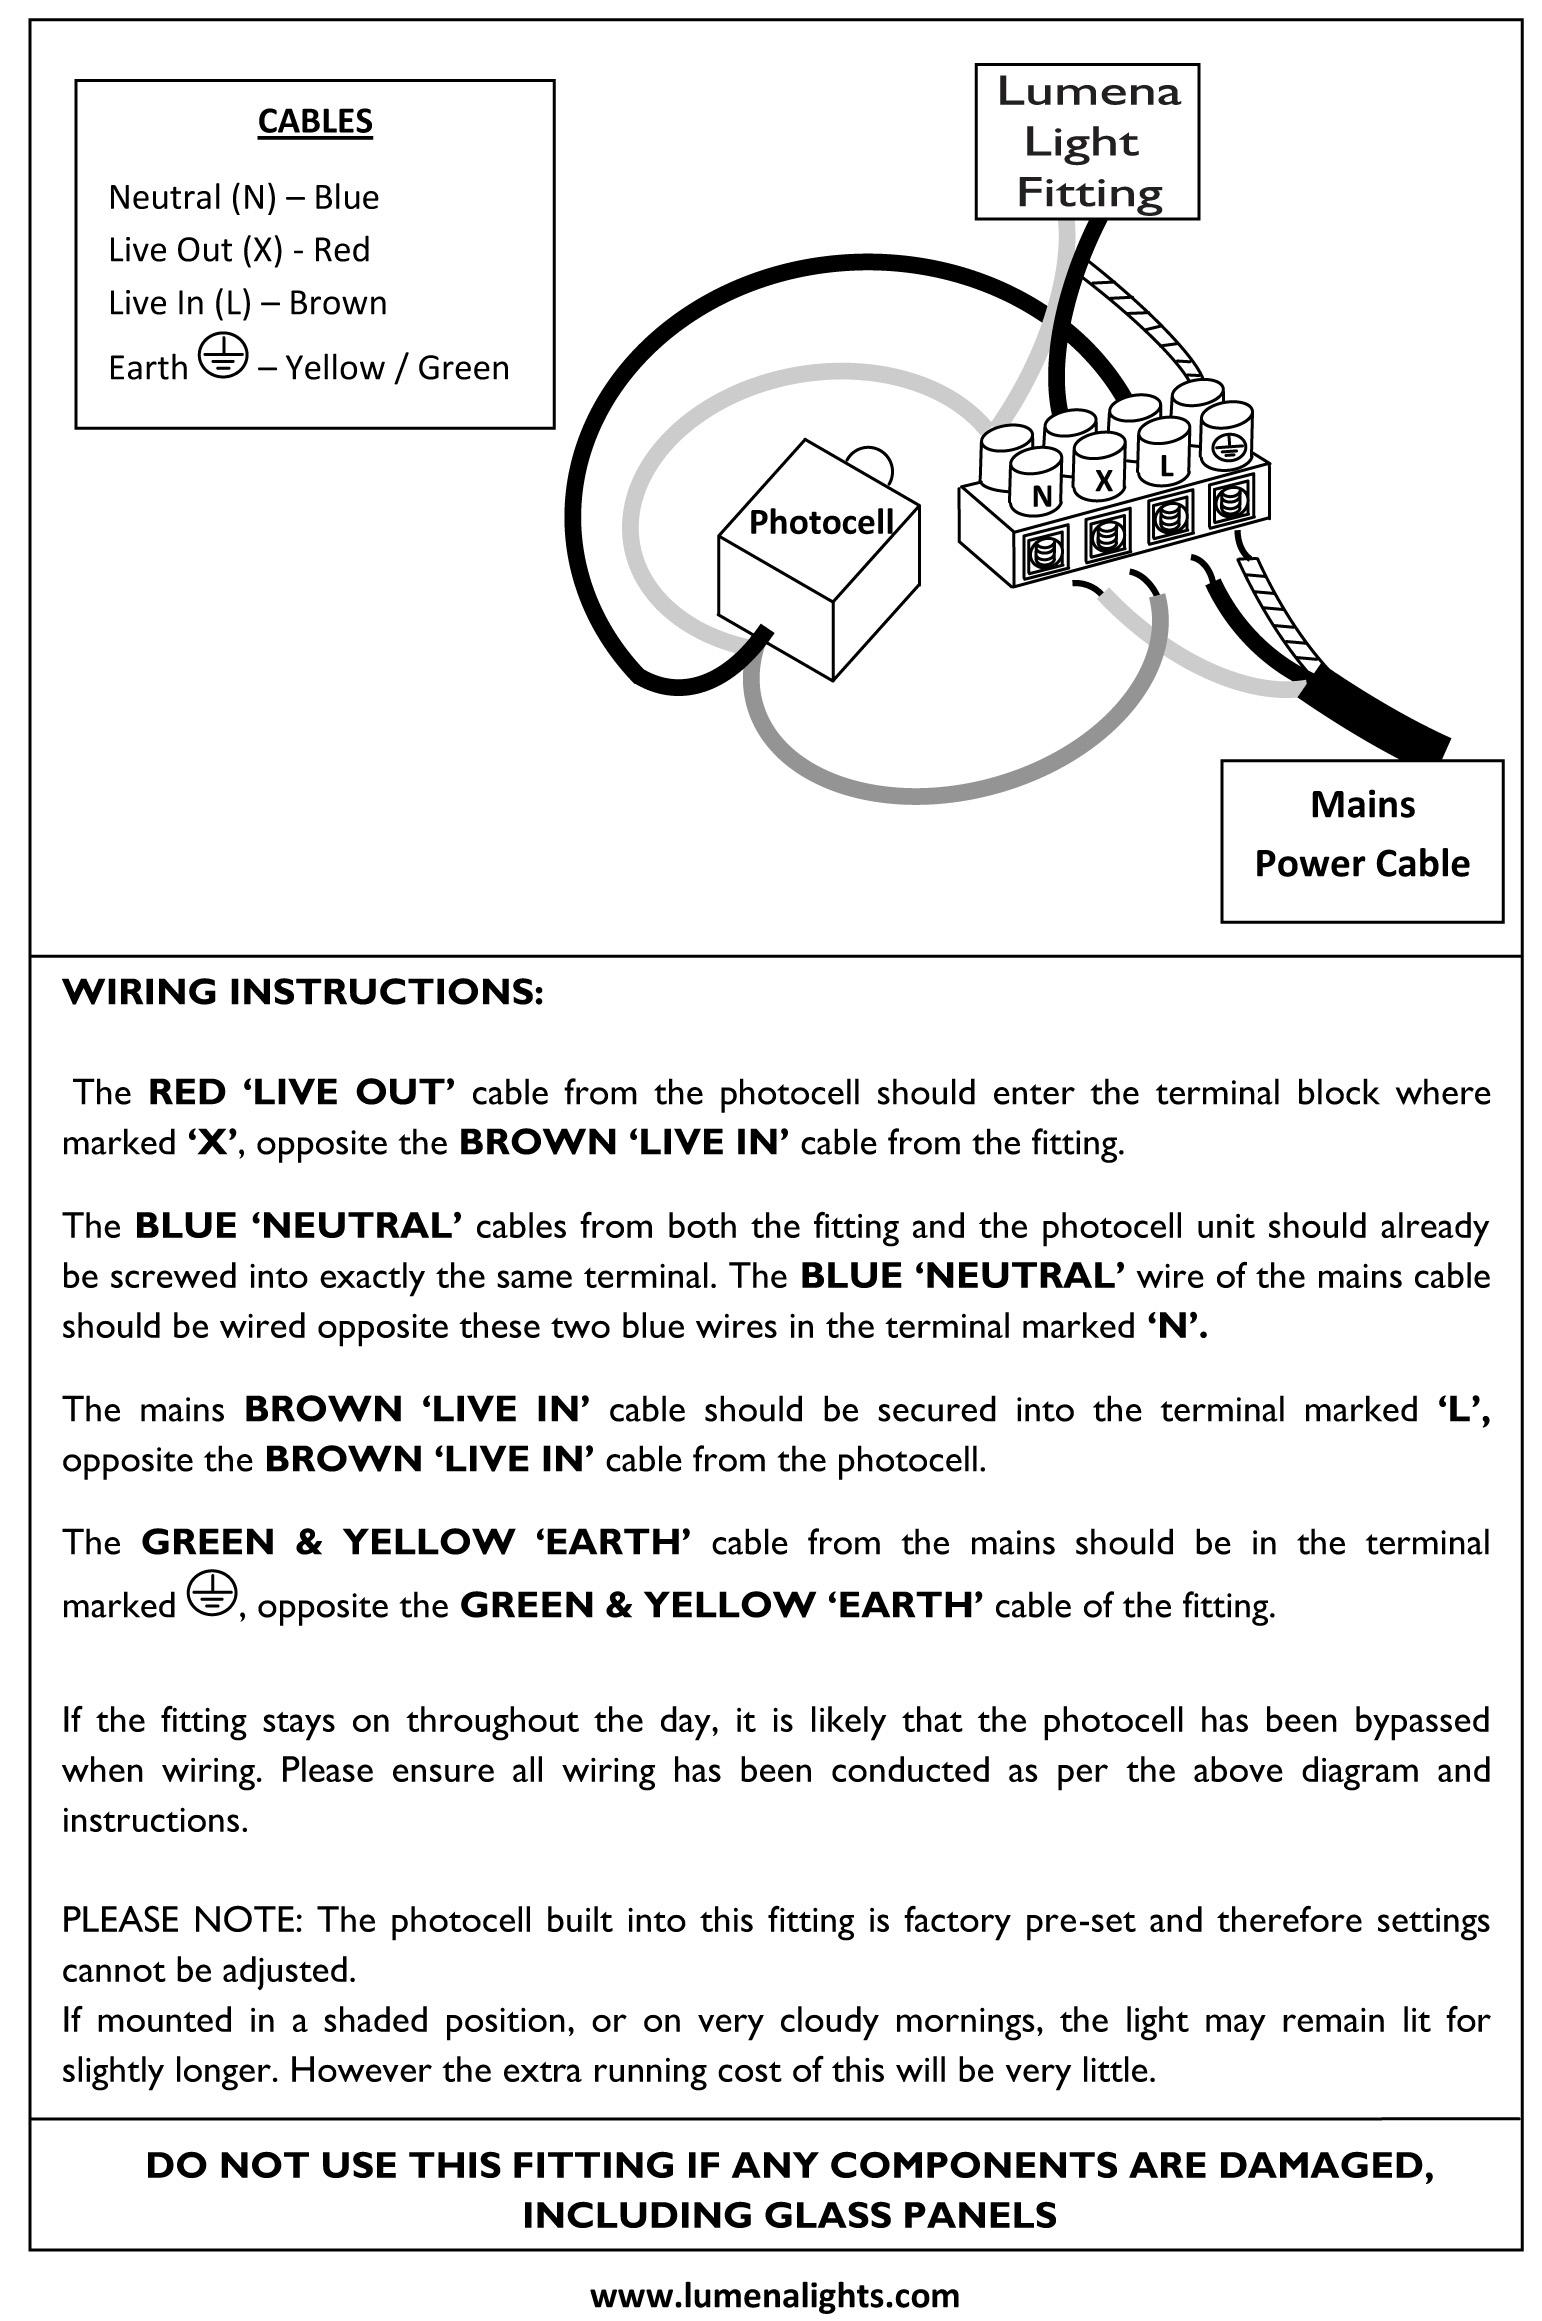 wiring diagram for 240v photocell jeep jk sub instructions33 lumena lights